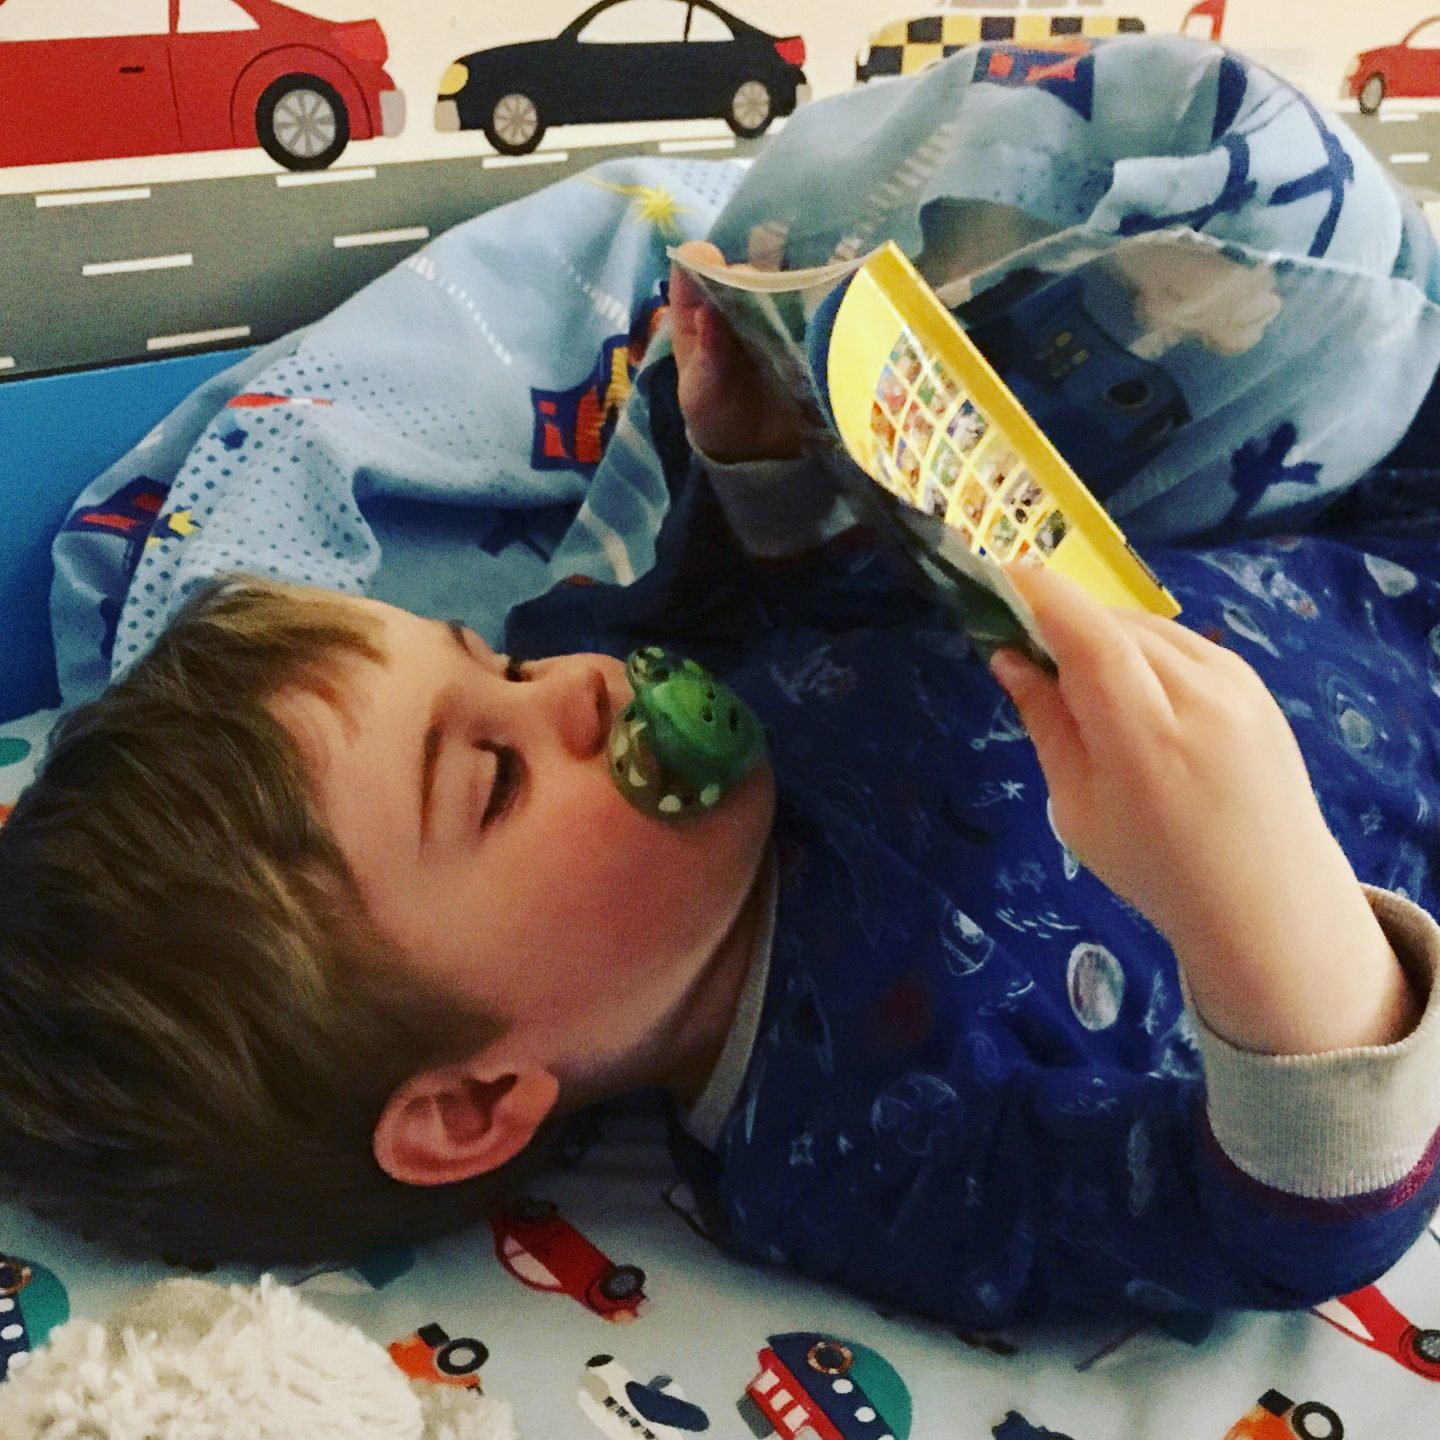 #Bathbookbed – My Favourite Part of the Day